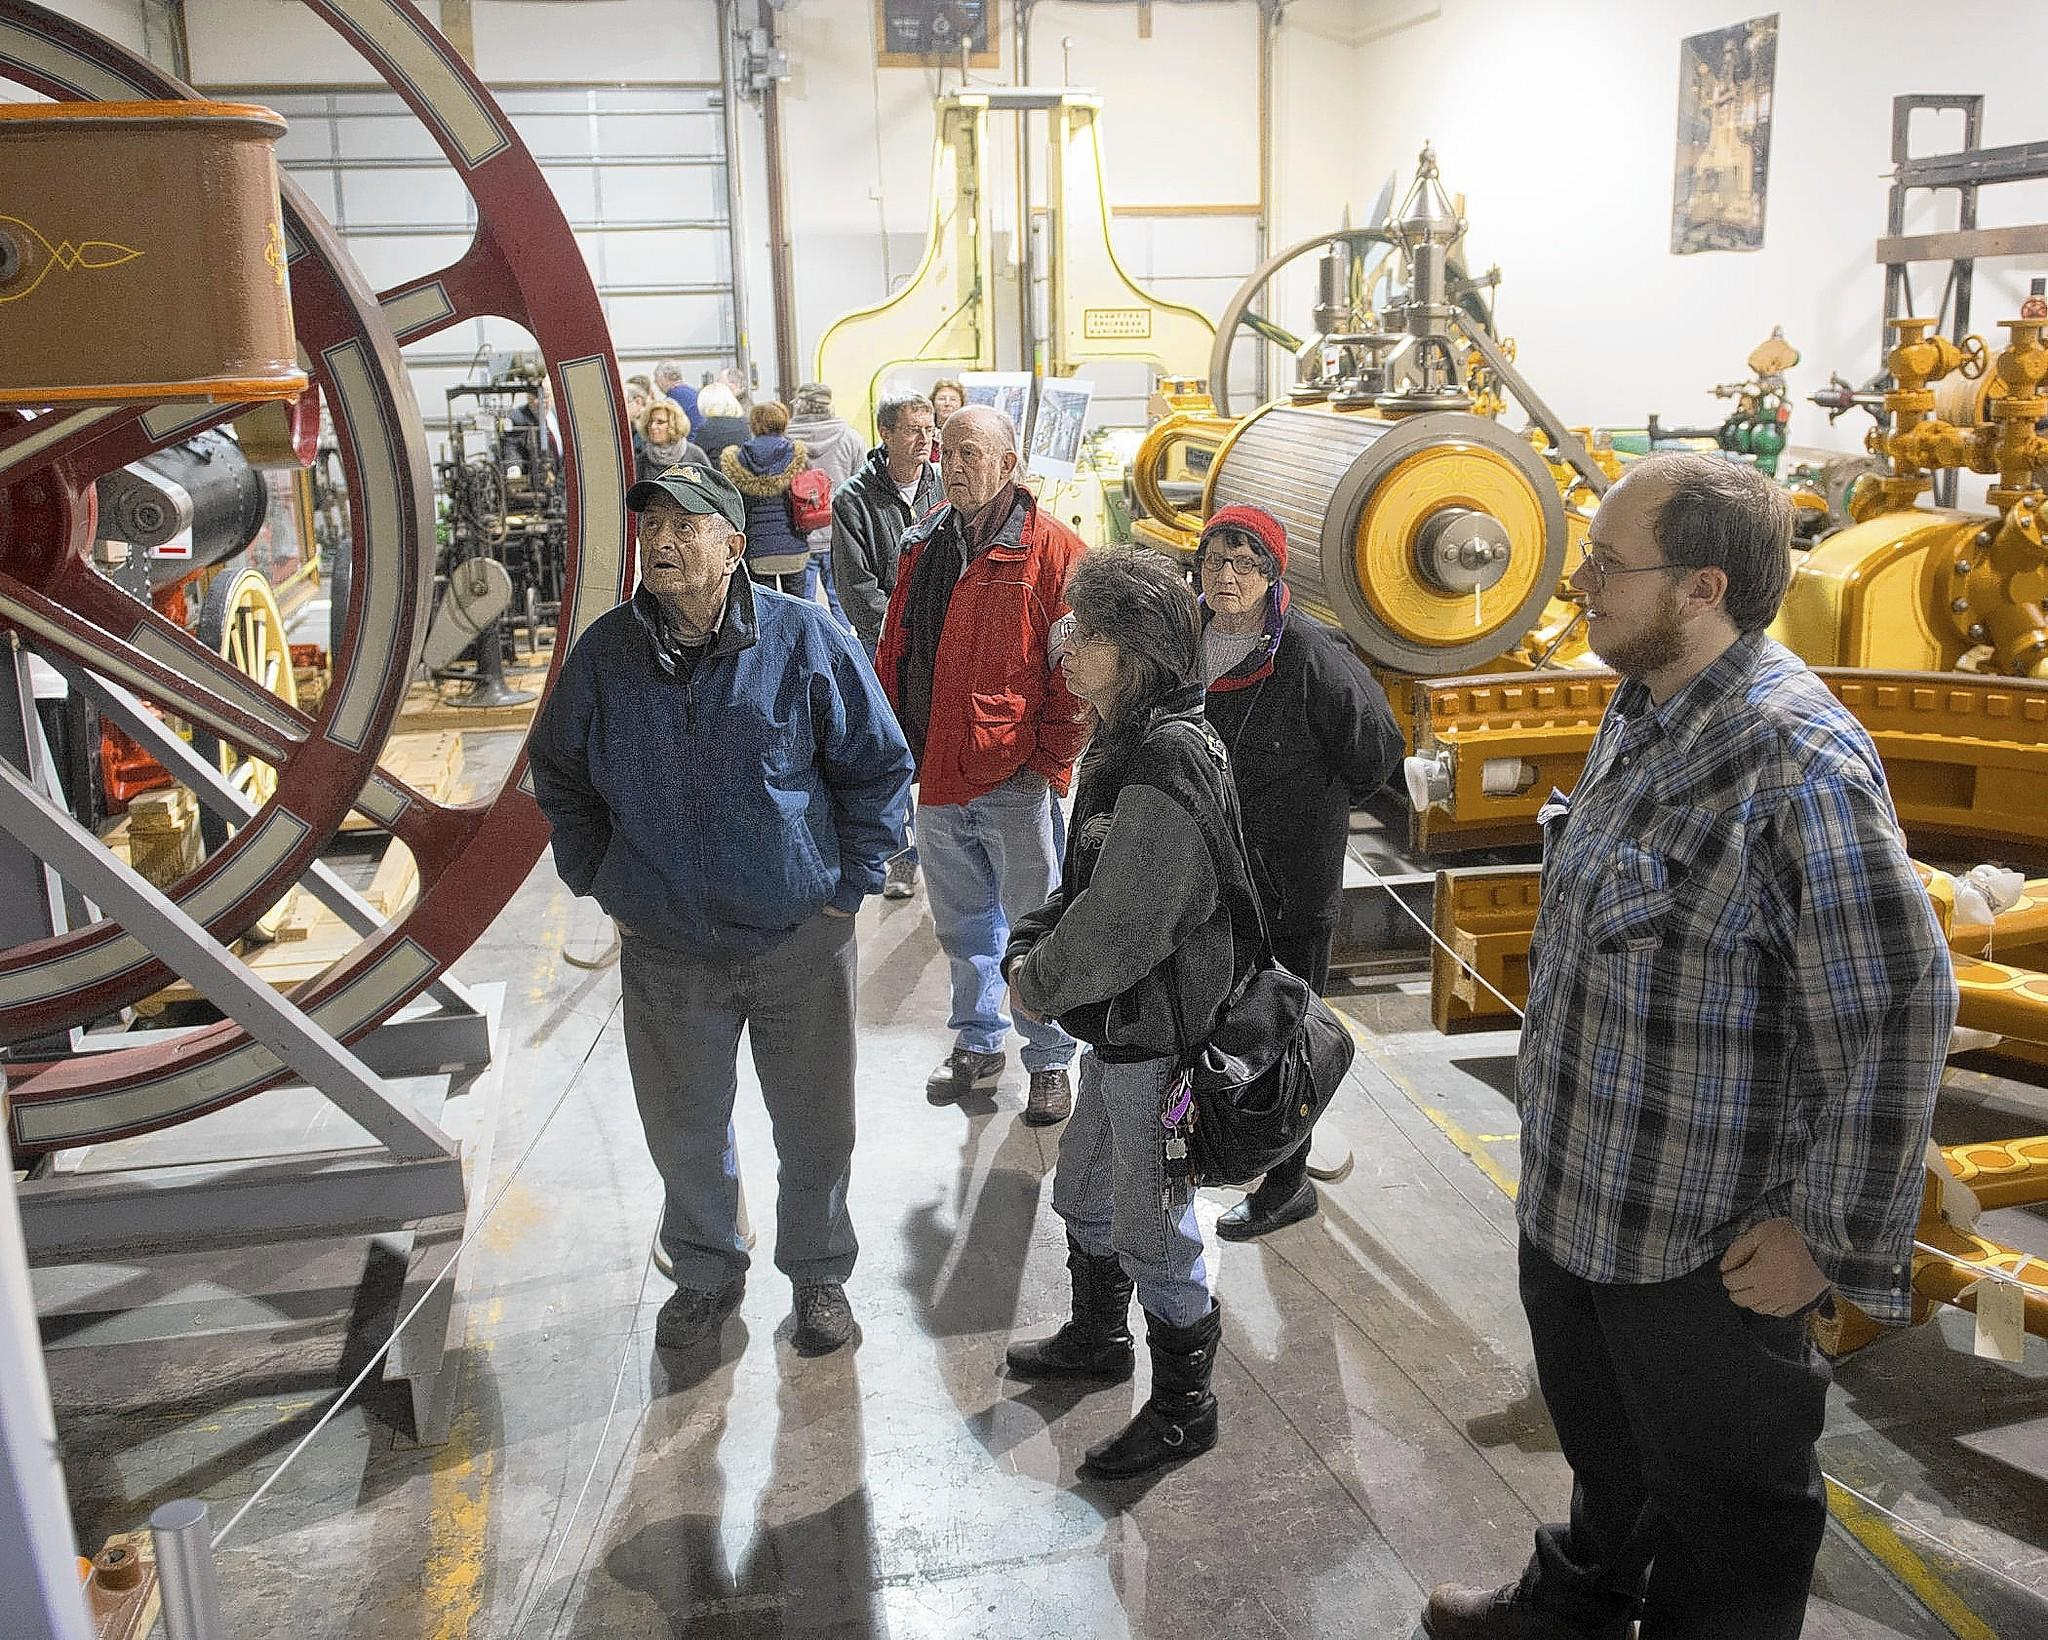 The National Museum of Industrial History held an open house to show its artifacts for the public in Hanover Township, Lehigh County on Sunday.